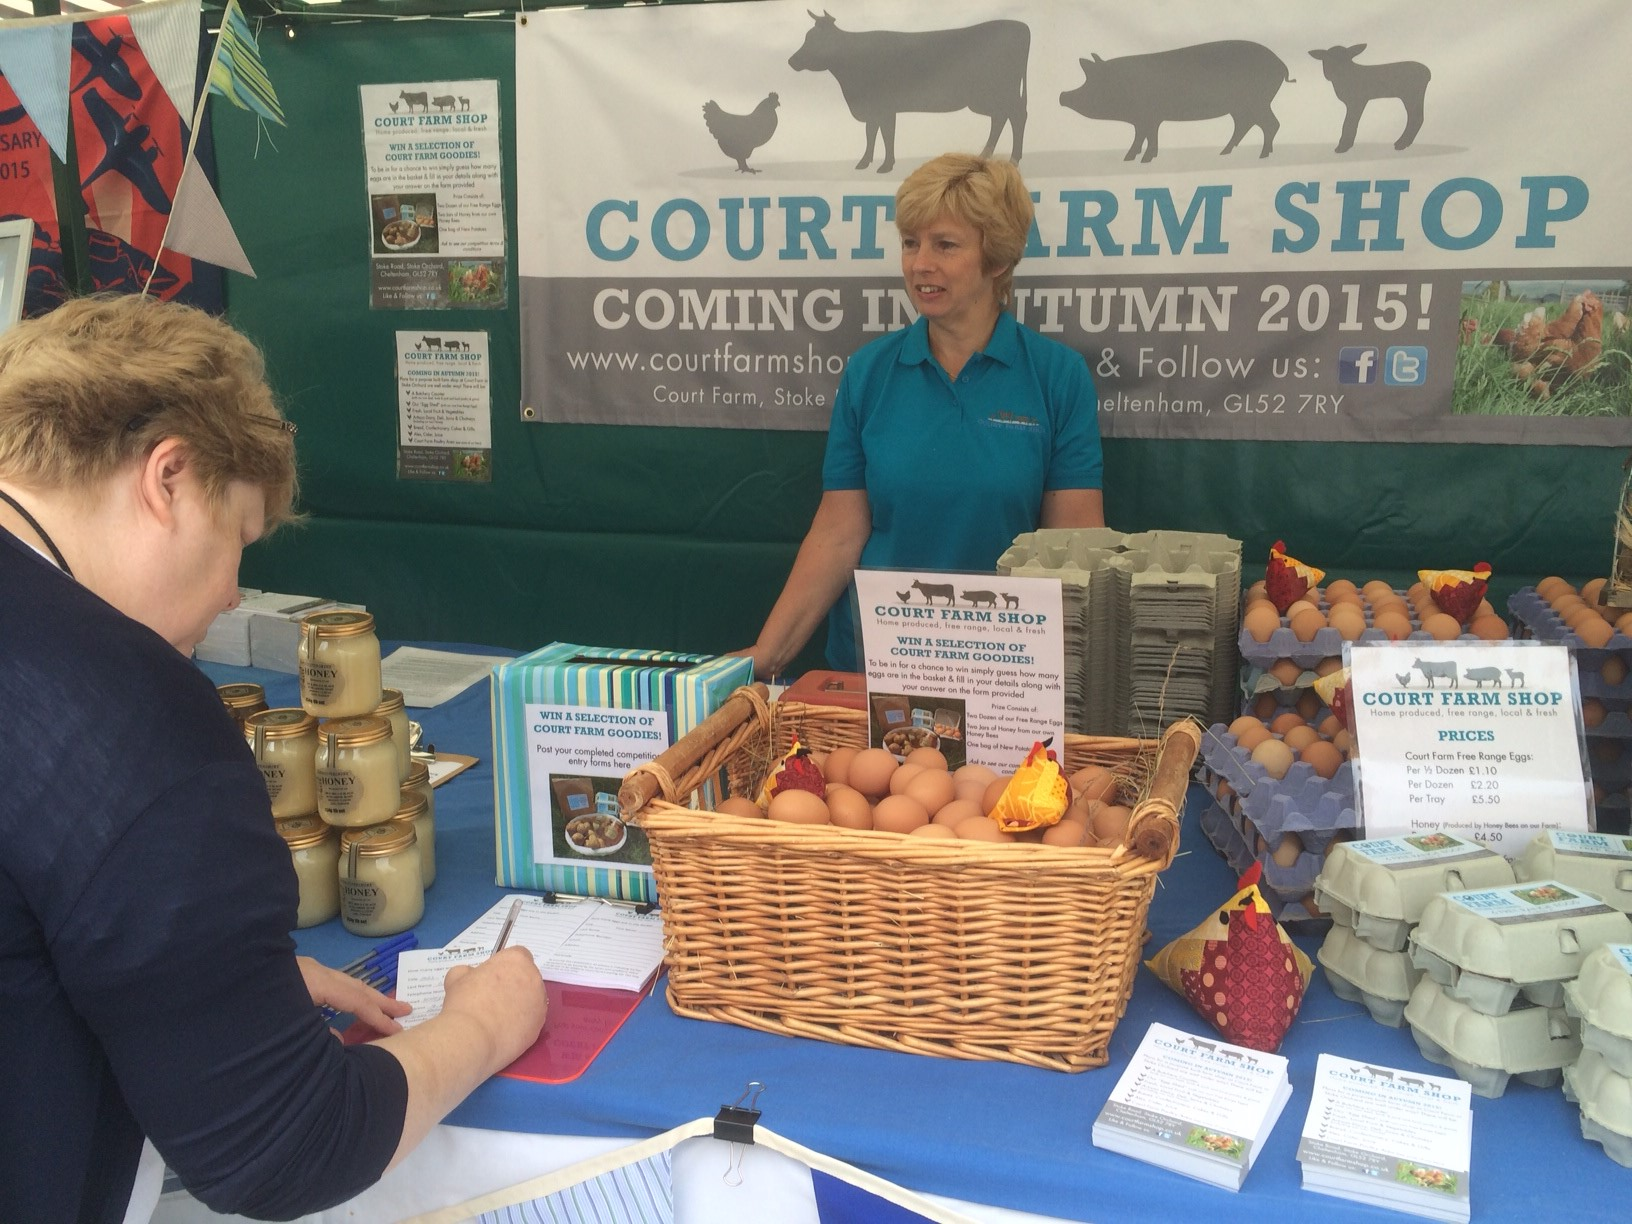 byresteads farm shop operation management Oversee the operation of a farm, including planning and managing production and handling business administration ensure farm operations and practices meet health, safety, and environmental .